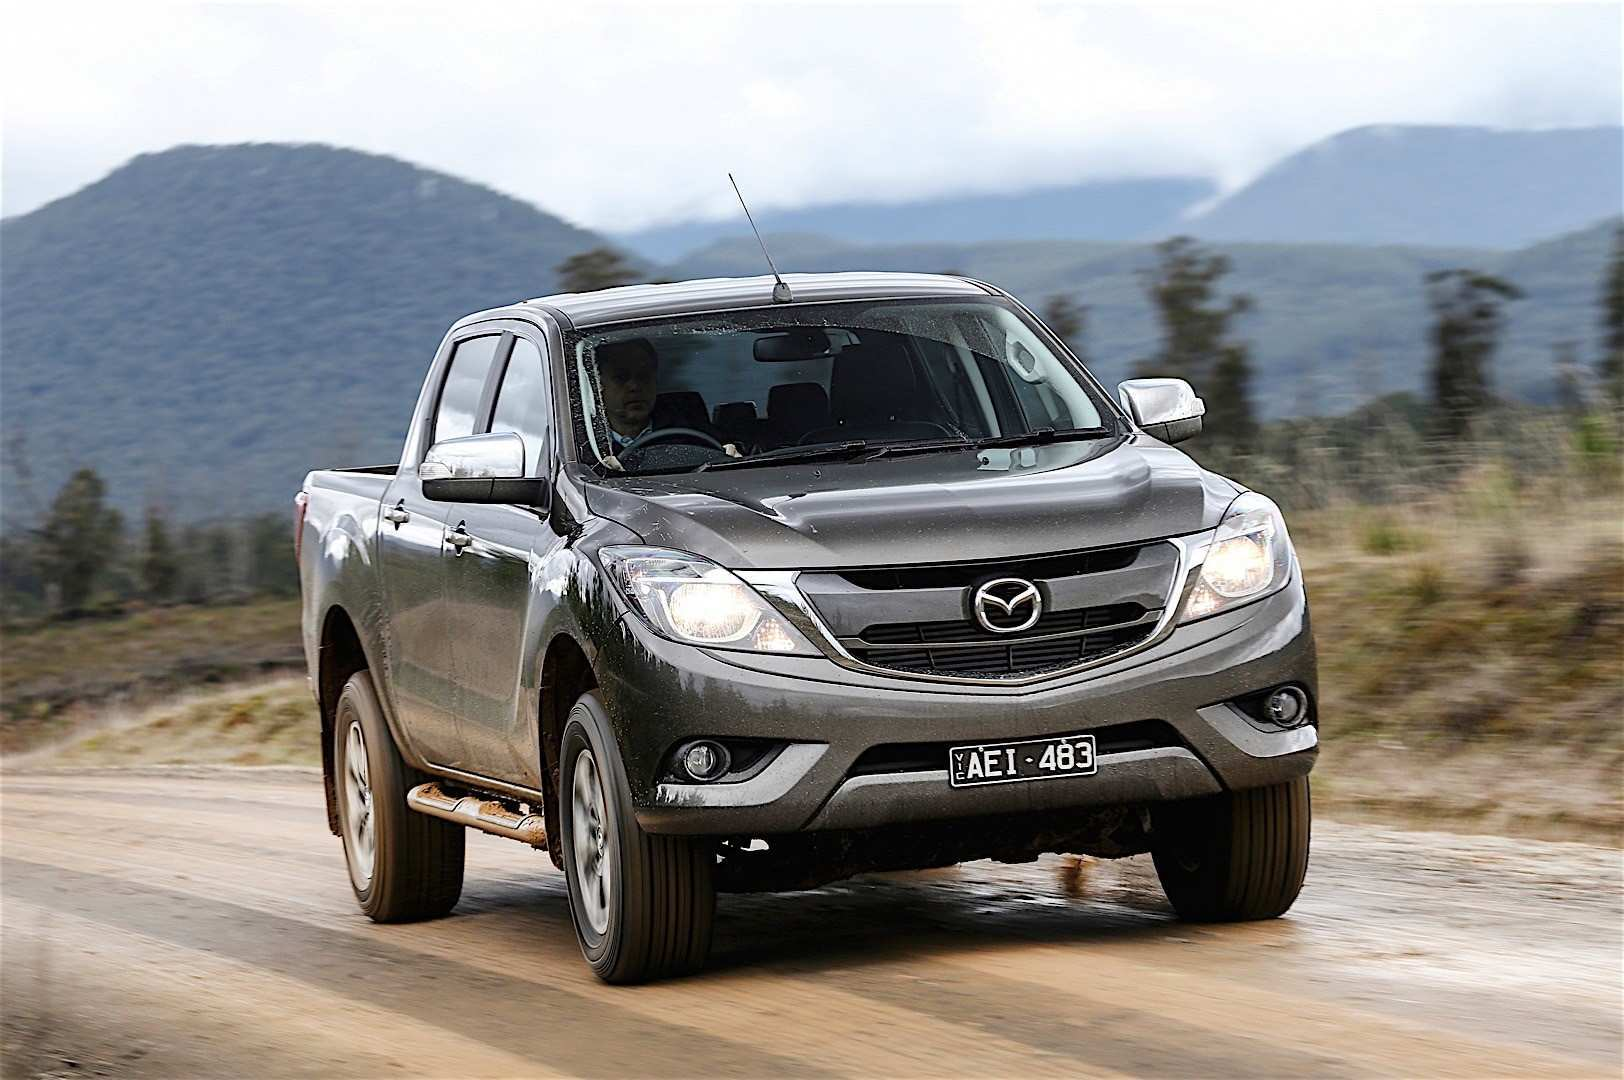 35 New 2019 Mazda Bt 50 Specs Performance for 2019 Mazda Bt 50 Specs